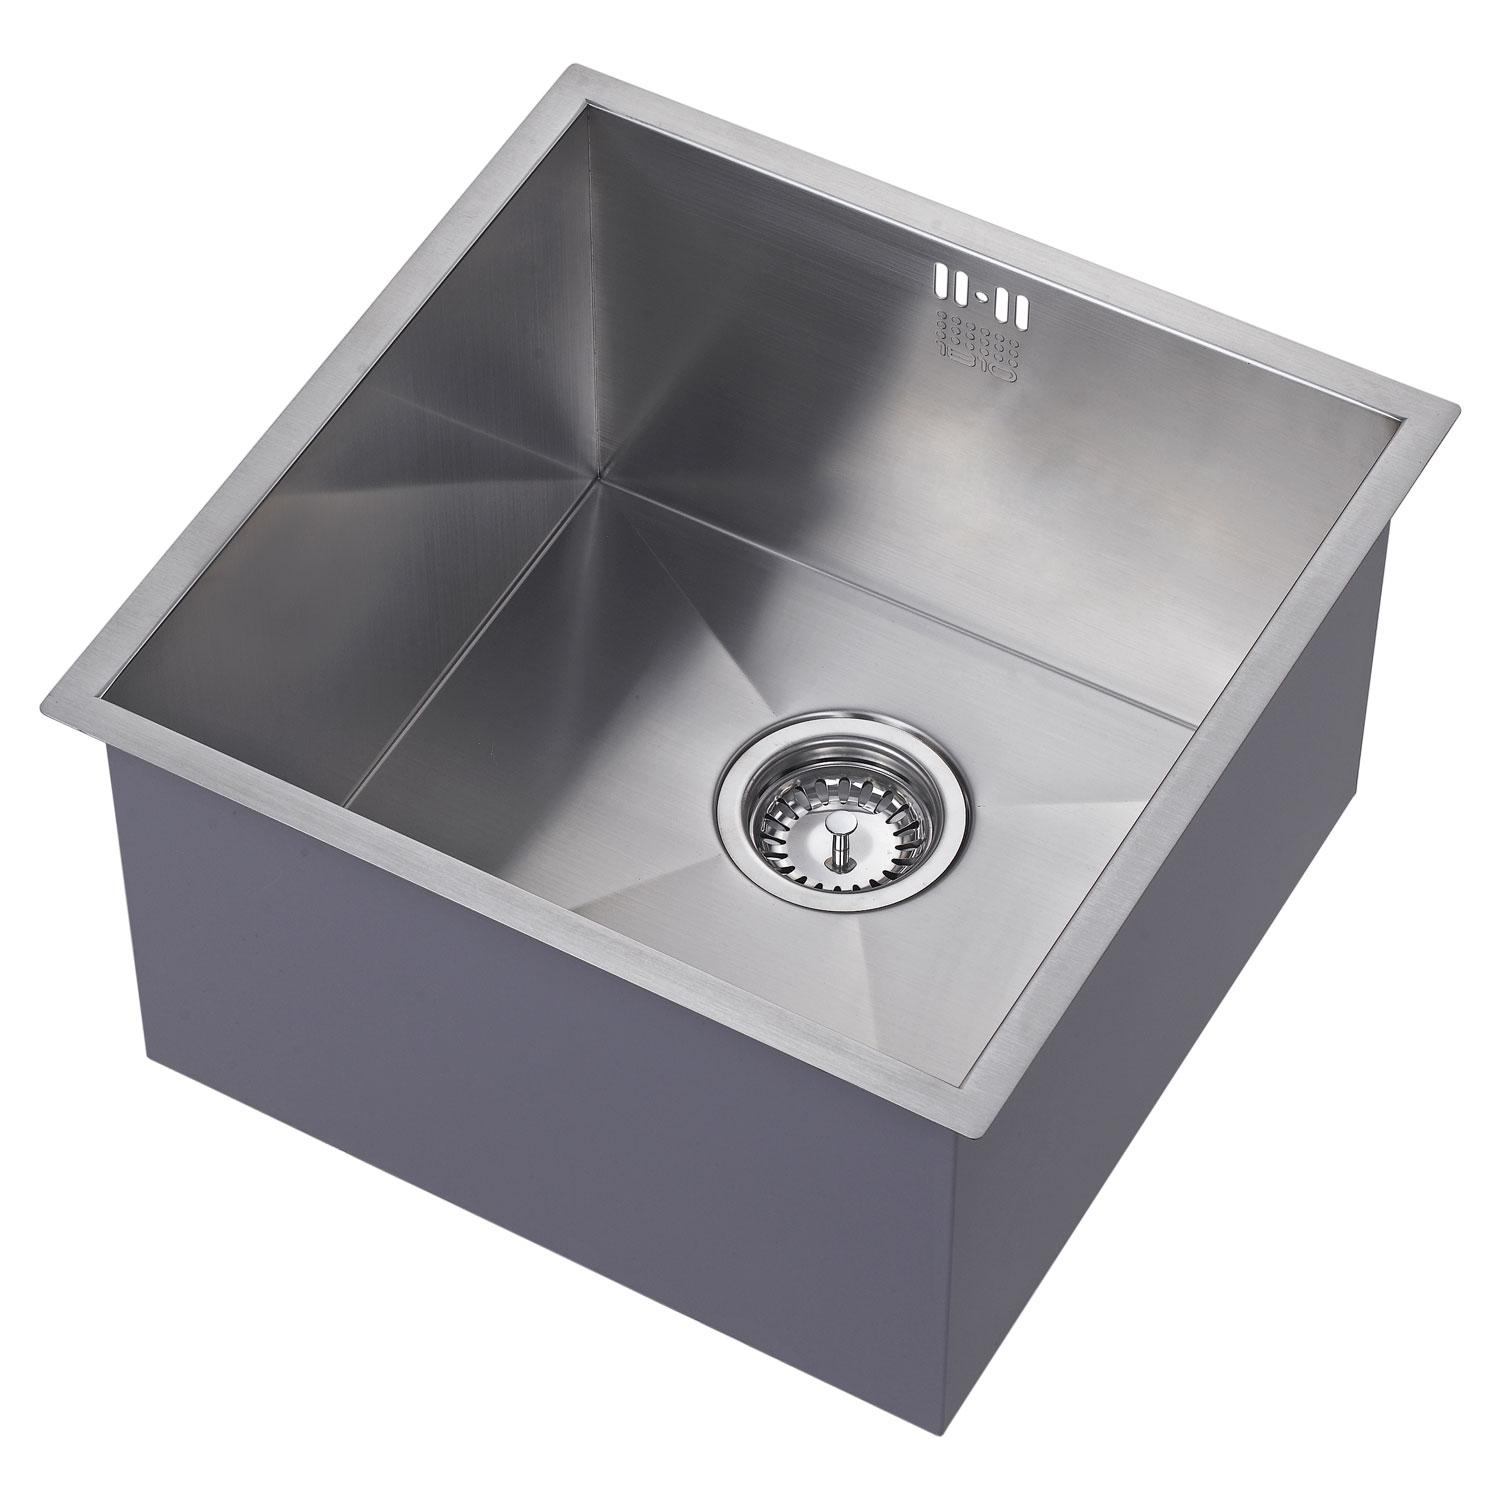 The 1810 Company Zenuno 400U Deep 1.0 Bowl Kitchen Sink - Stainless Steel